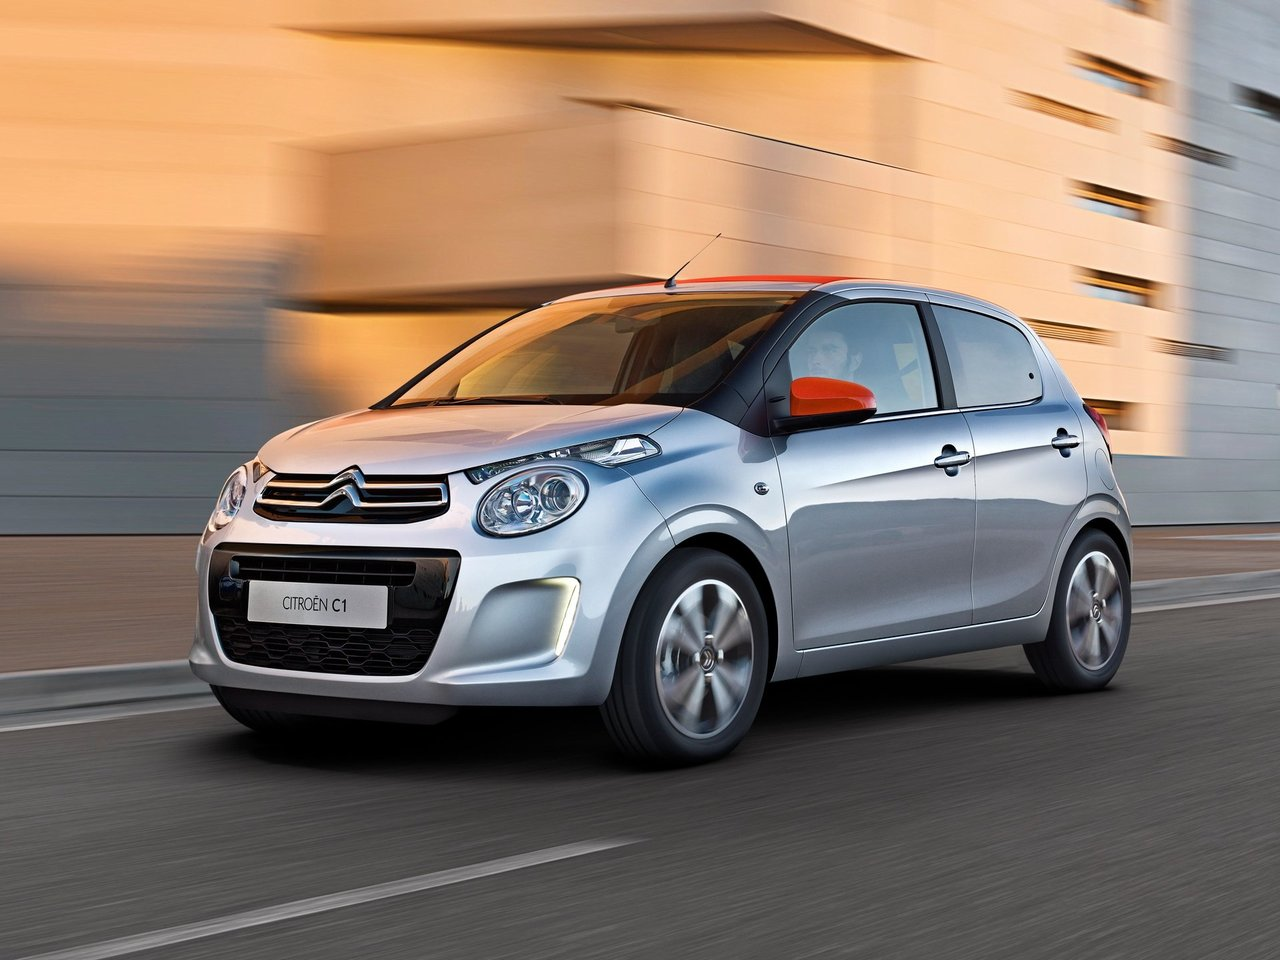 citroen c1 technical specifications and fuel economy. Black Bedroom Furniture Sets. Home Design Ideas